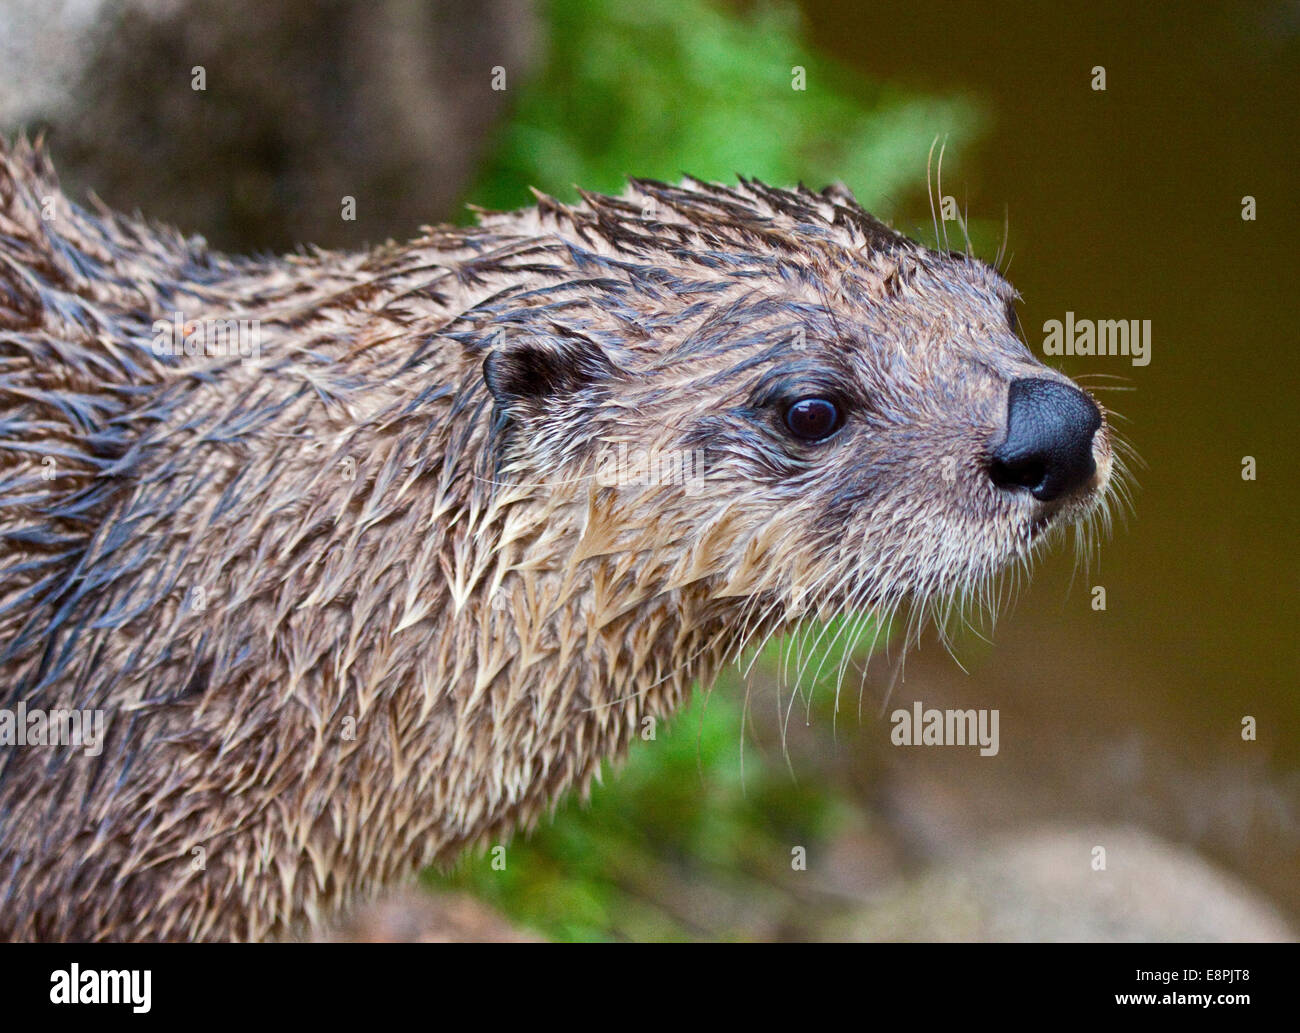 North American River Otter (lontra canadensis) - Stock Image